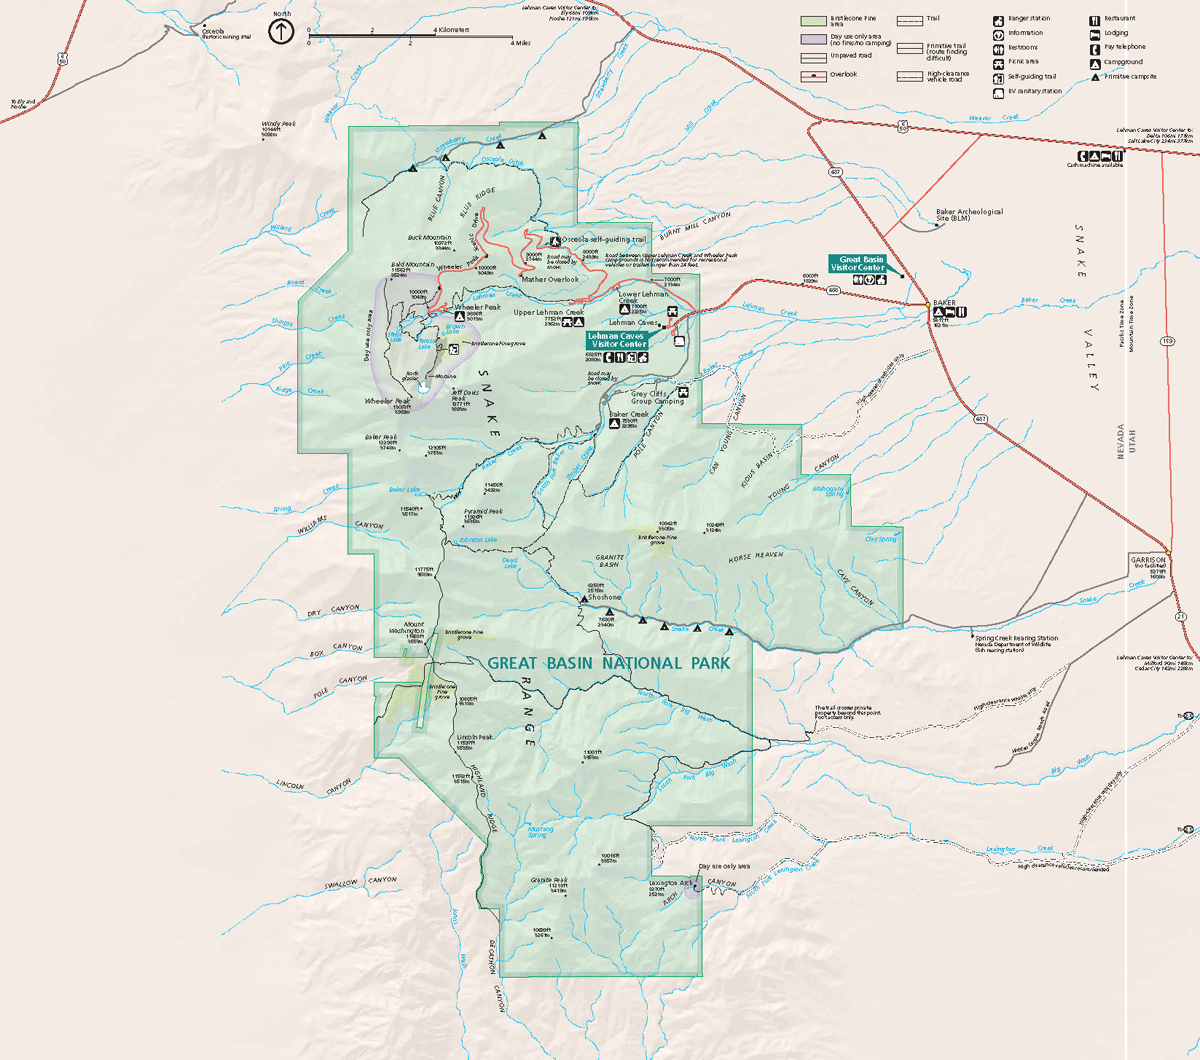 Great Basin National Park Map 2007 04